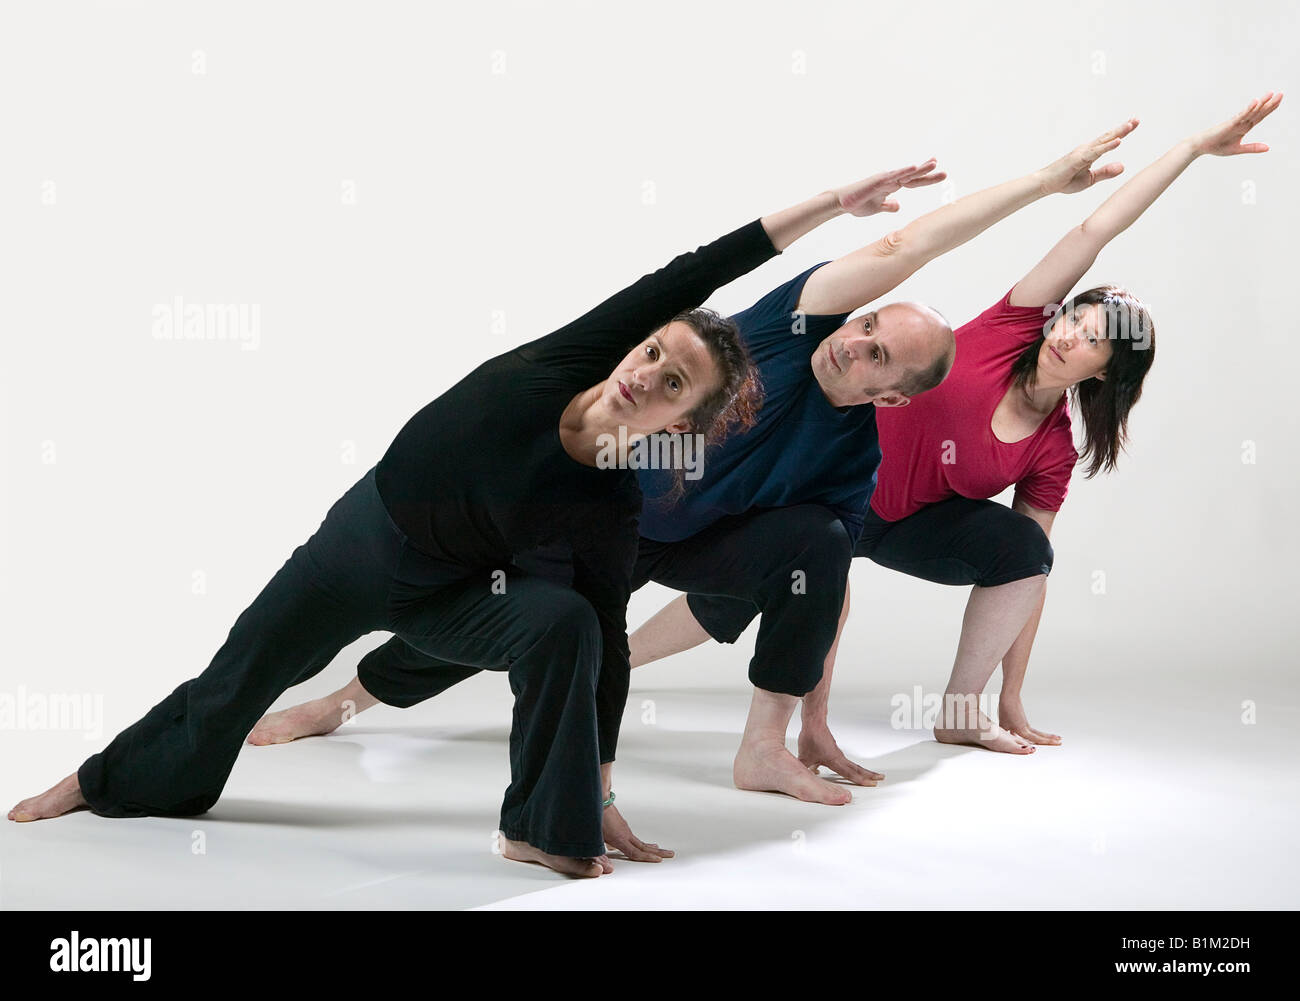 Three People Practicing Yoga Variation Of The Triangle Pose Stock Photo Alamy